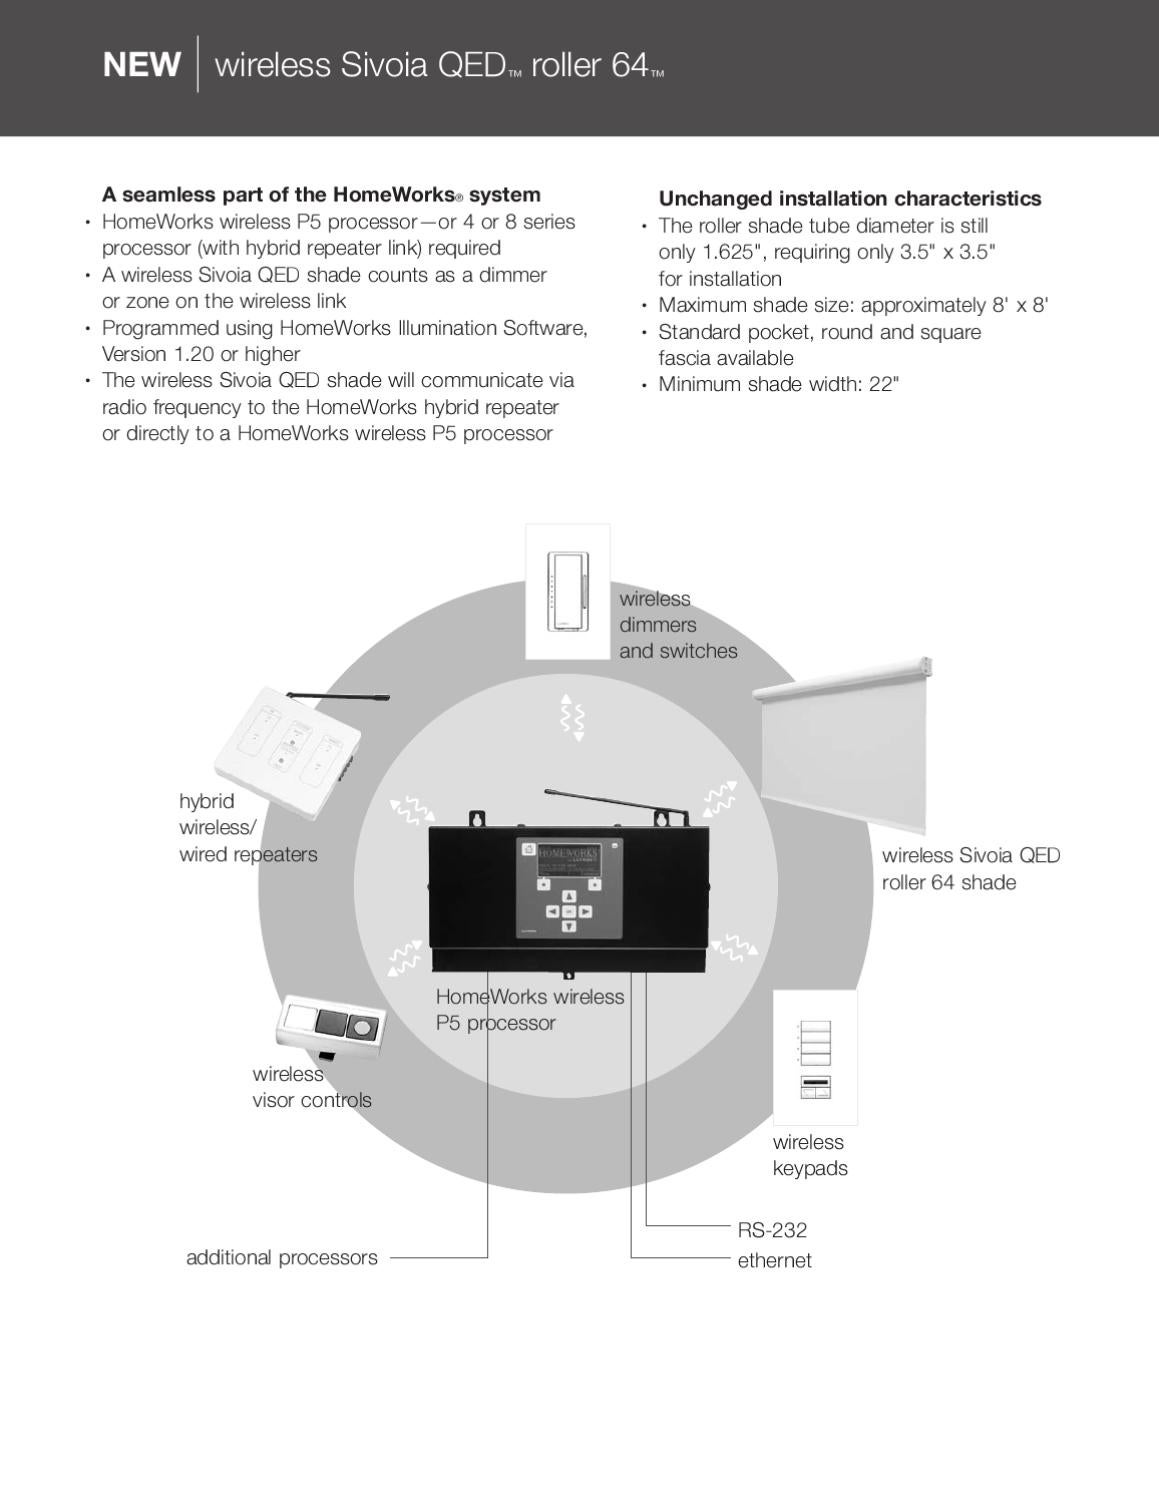 qed wiring diagram wireless sivoia qed roller 64 by exclusive lighting solutions issuu  wireless sivoia qed roller 64 by